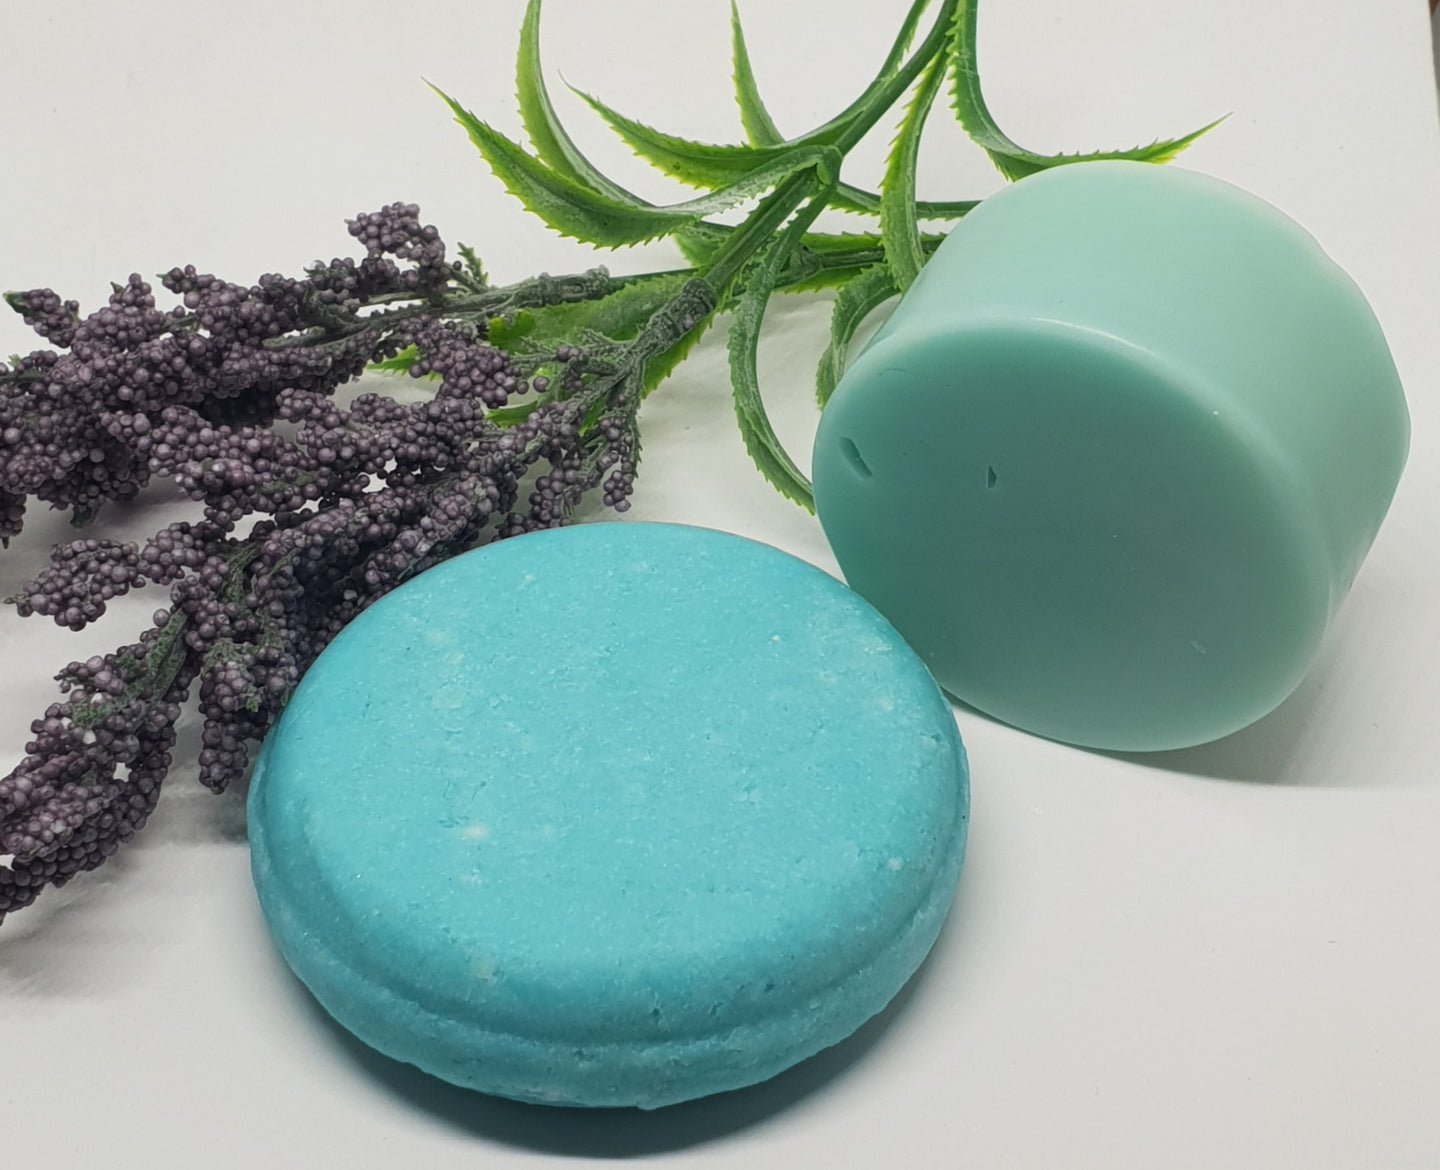 Shampoo and Conditioner Bar Set - Rosemary, Mint and Argan Oil - Splash-&-Sass